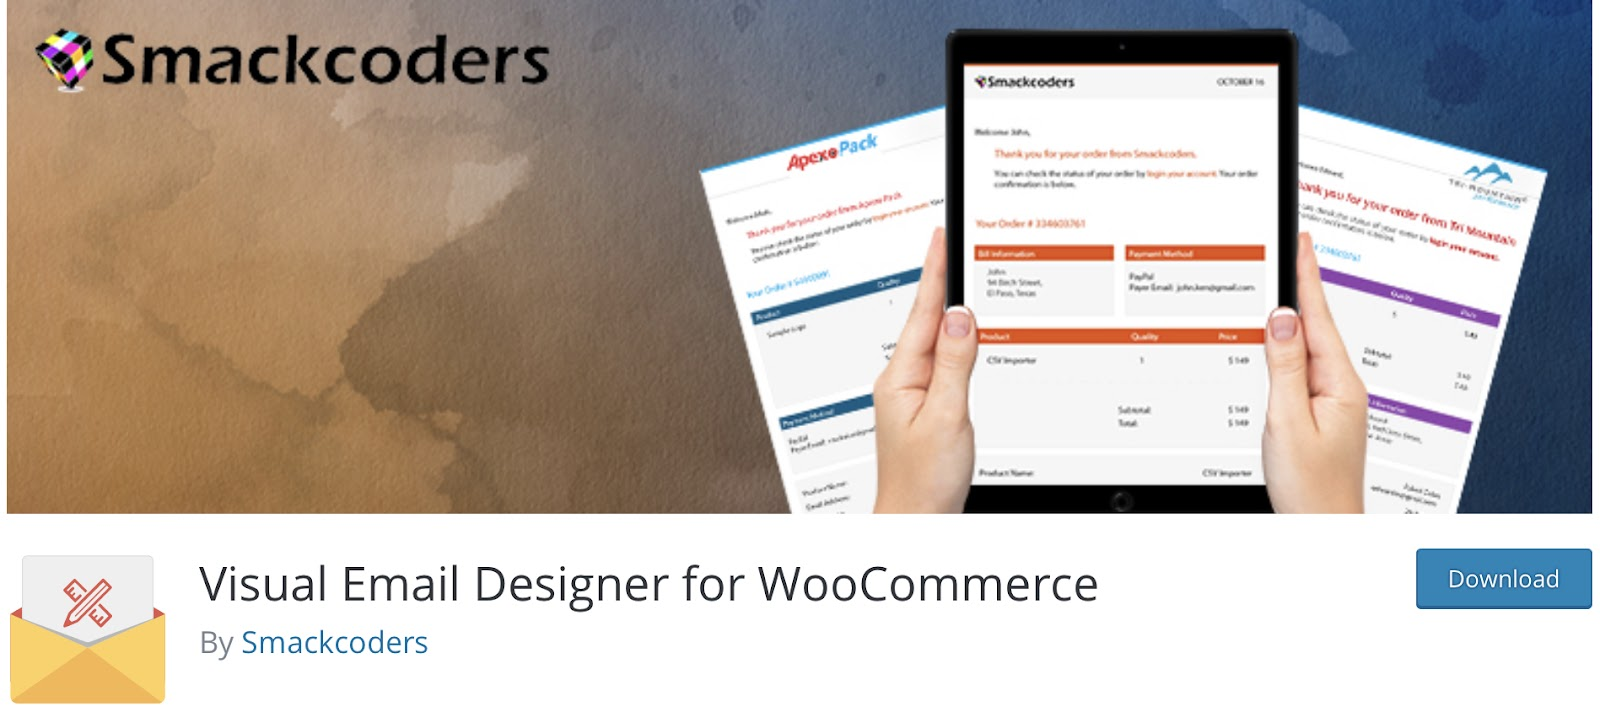 Visual Email Designer for WooCommerce by Smackcoders